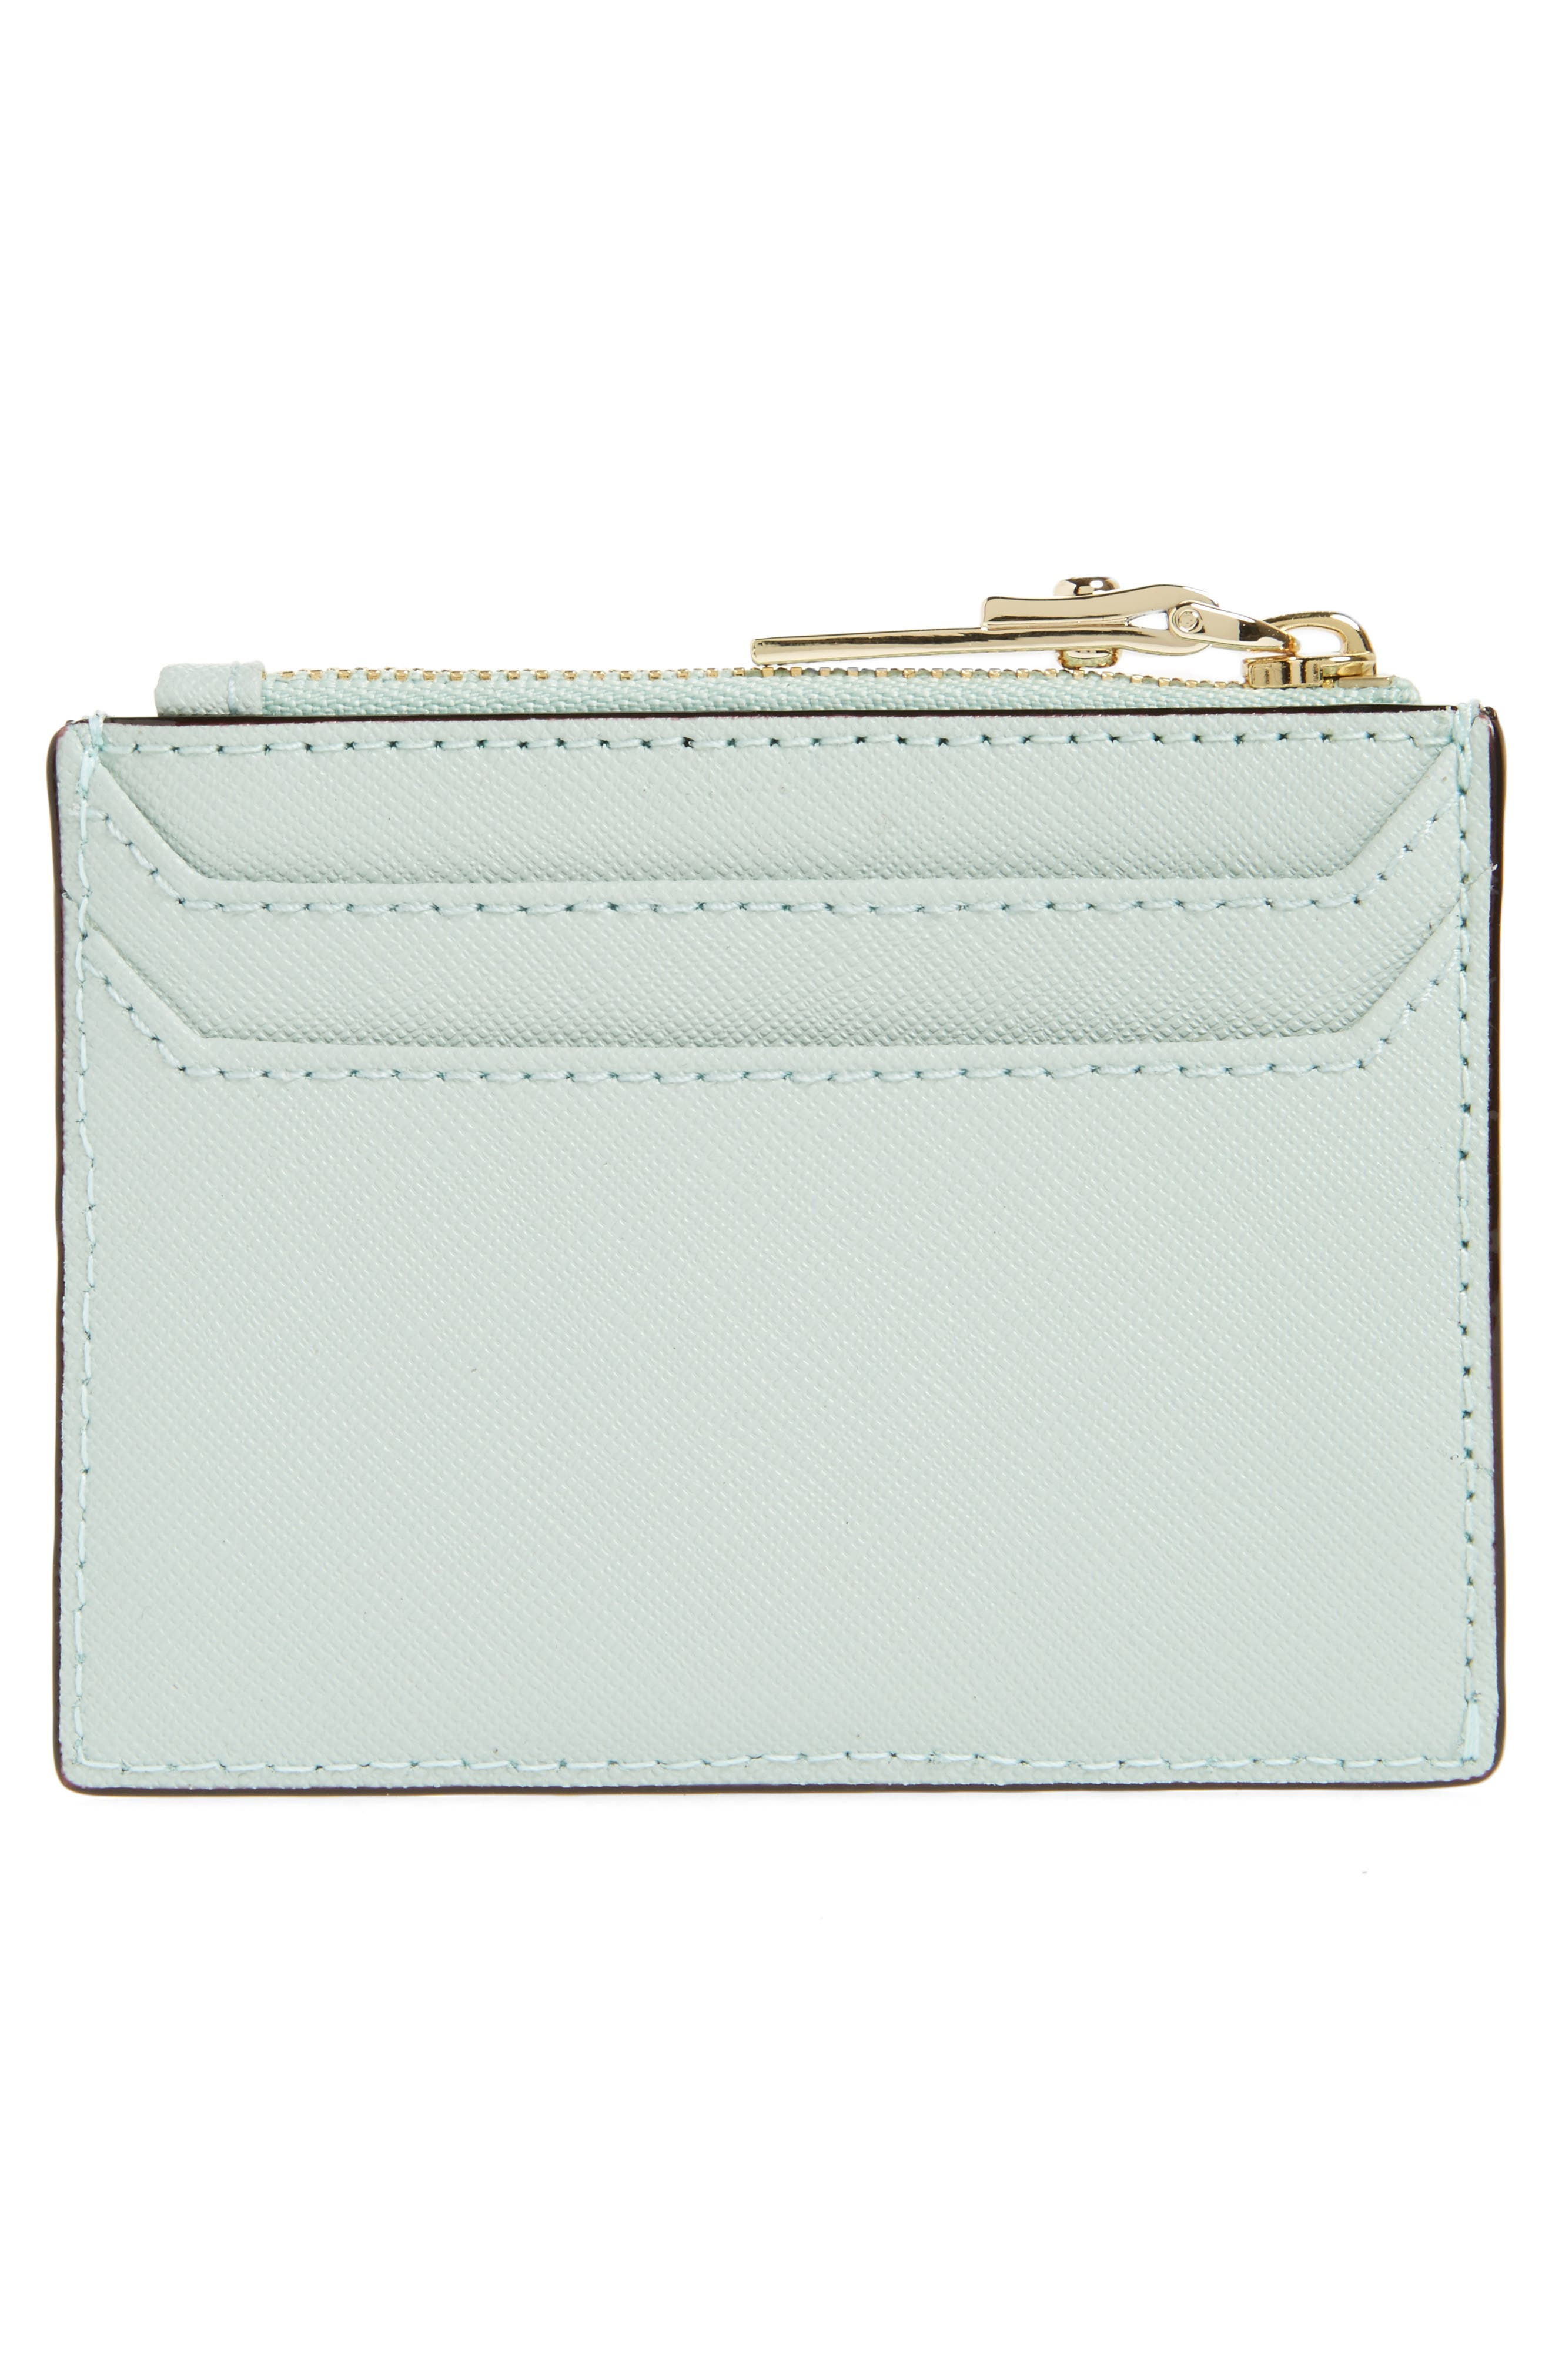 cameron street - lalena leather card case,                             Alternate thumbnail 2, color,                             Misty Mint